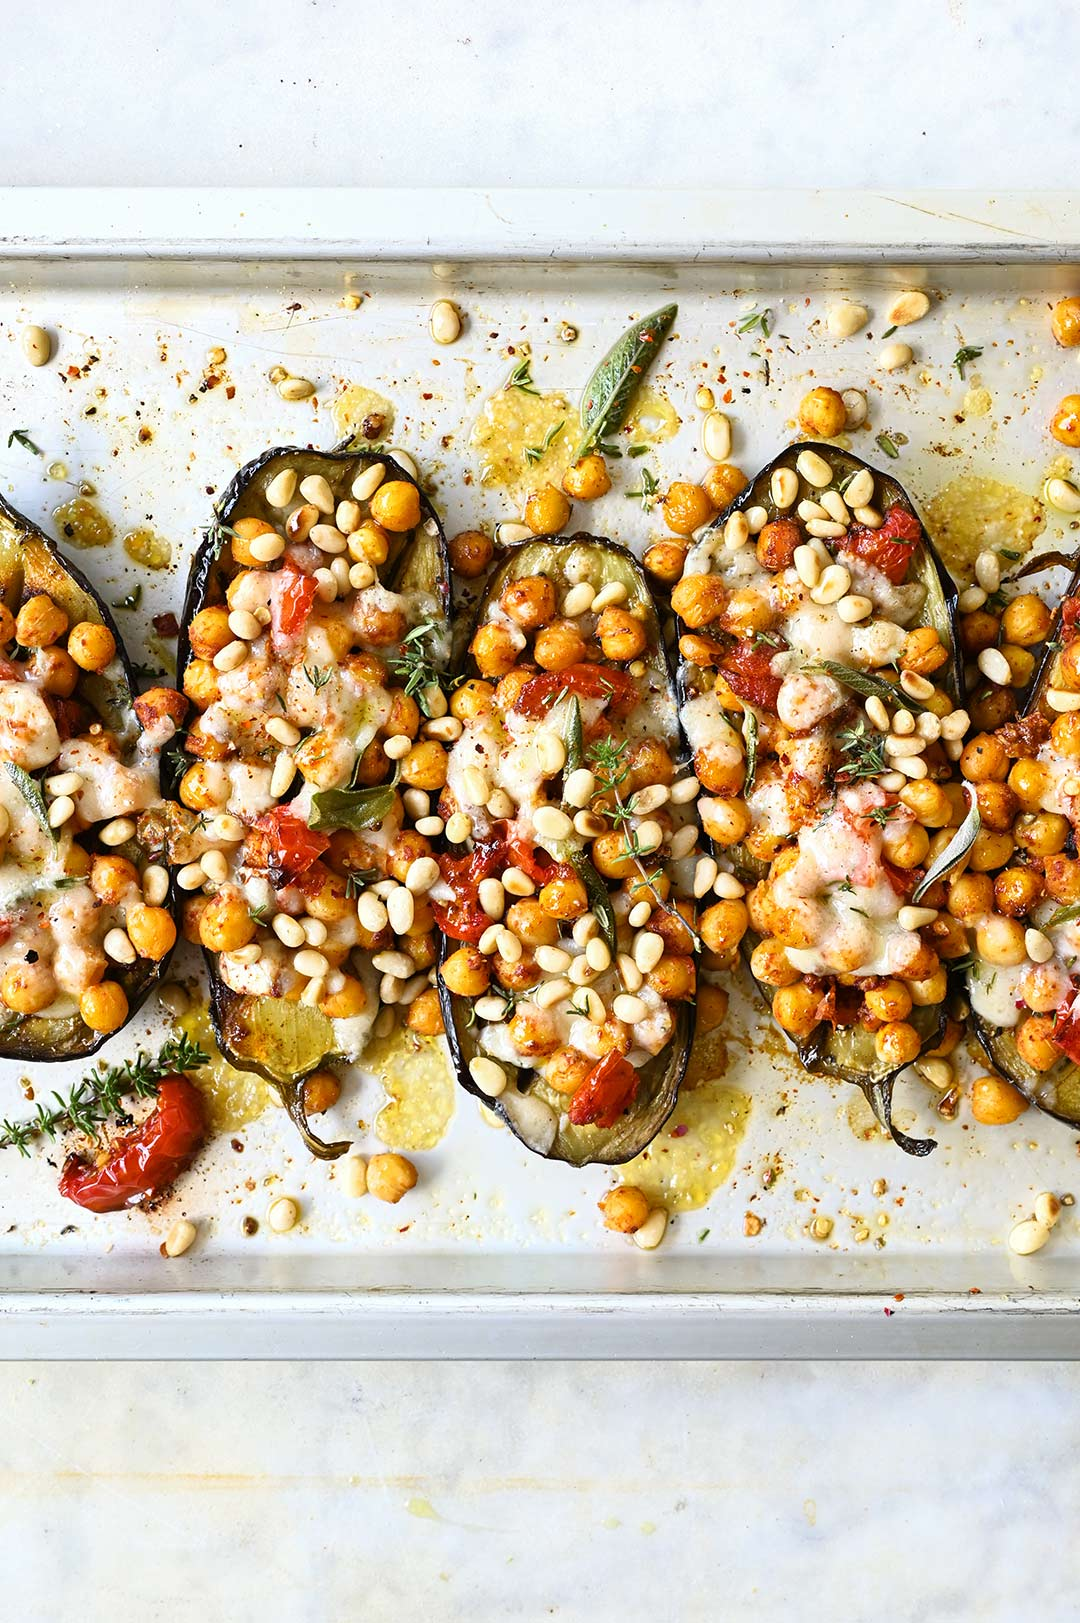 serving dumplings | Roasted aubergines with smokey chickpeas and parmesan